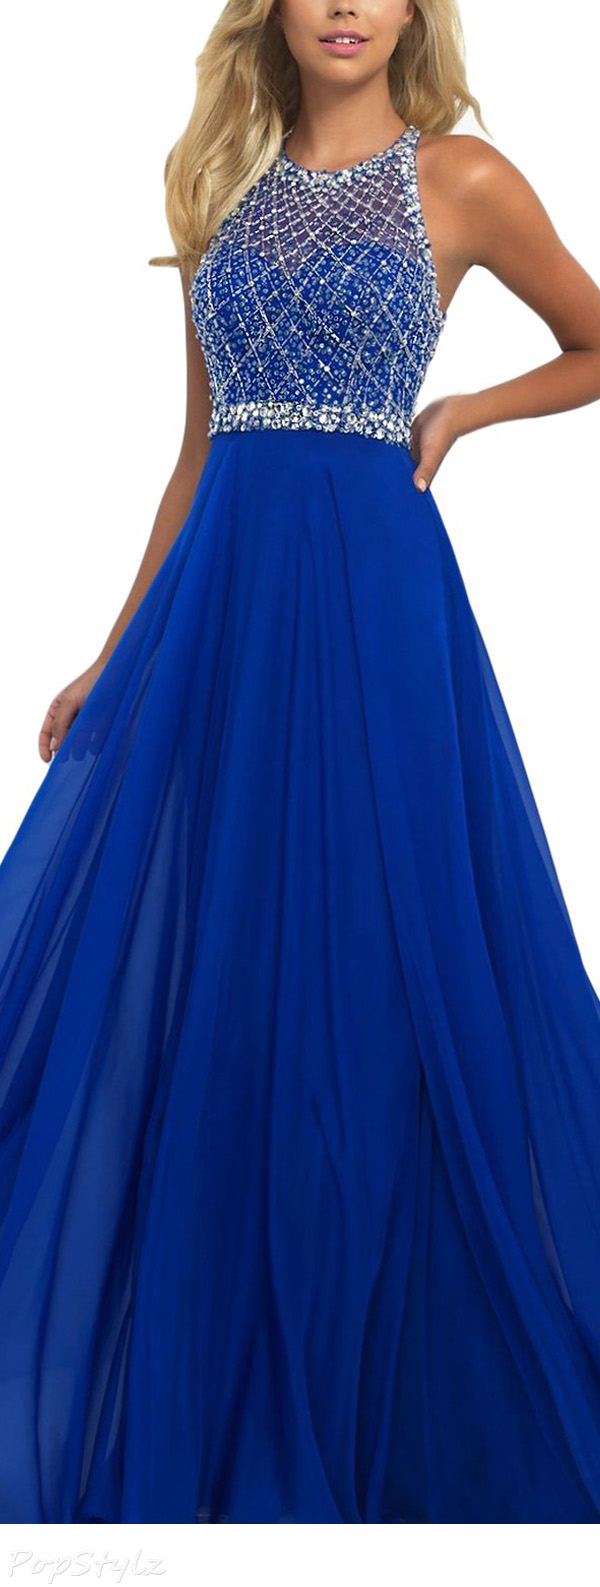 SeasonMall Chiffon & Tulle A Line Halter Open Back Dress